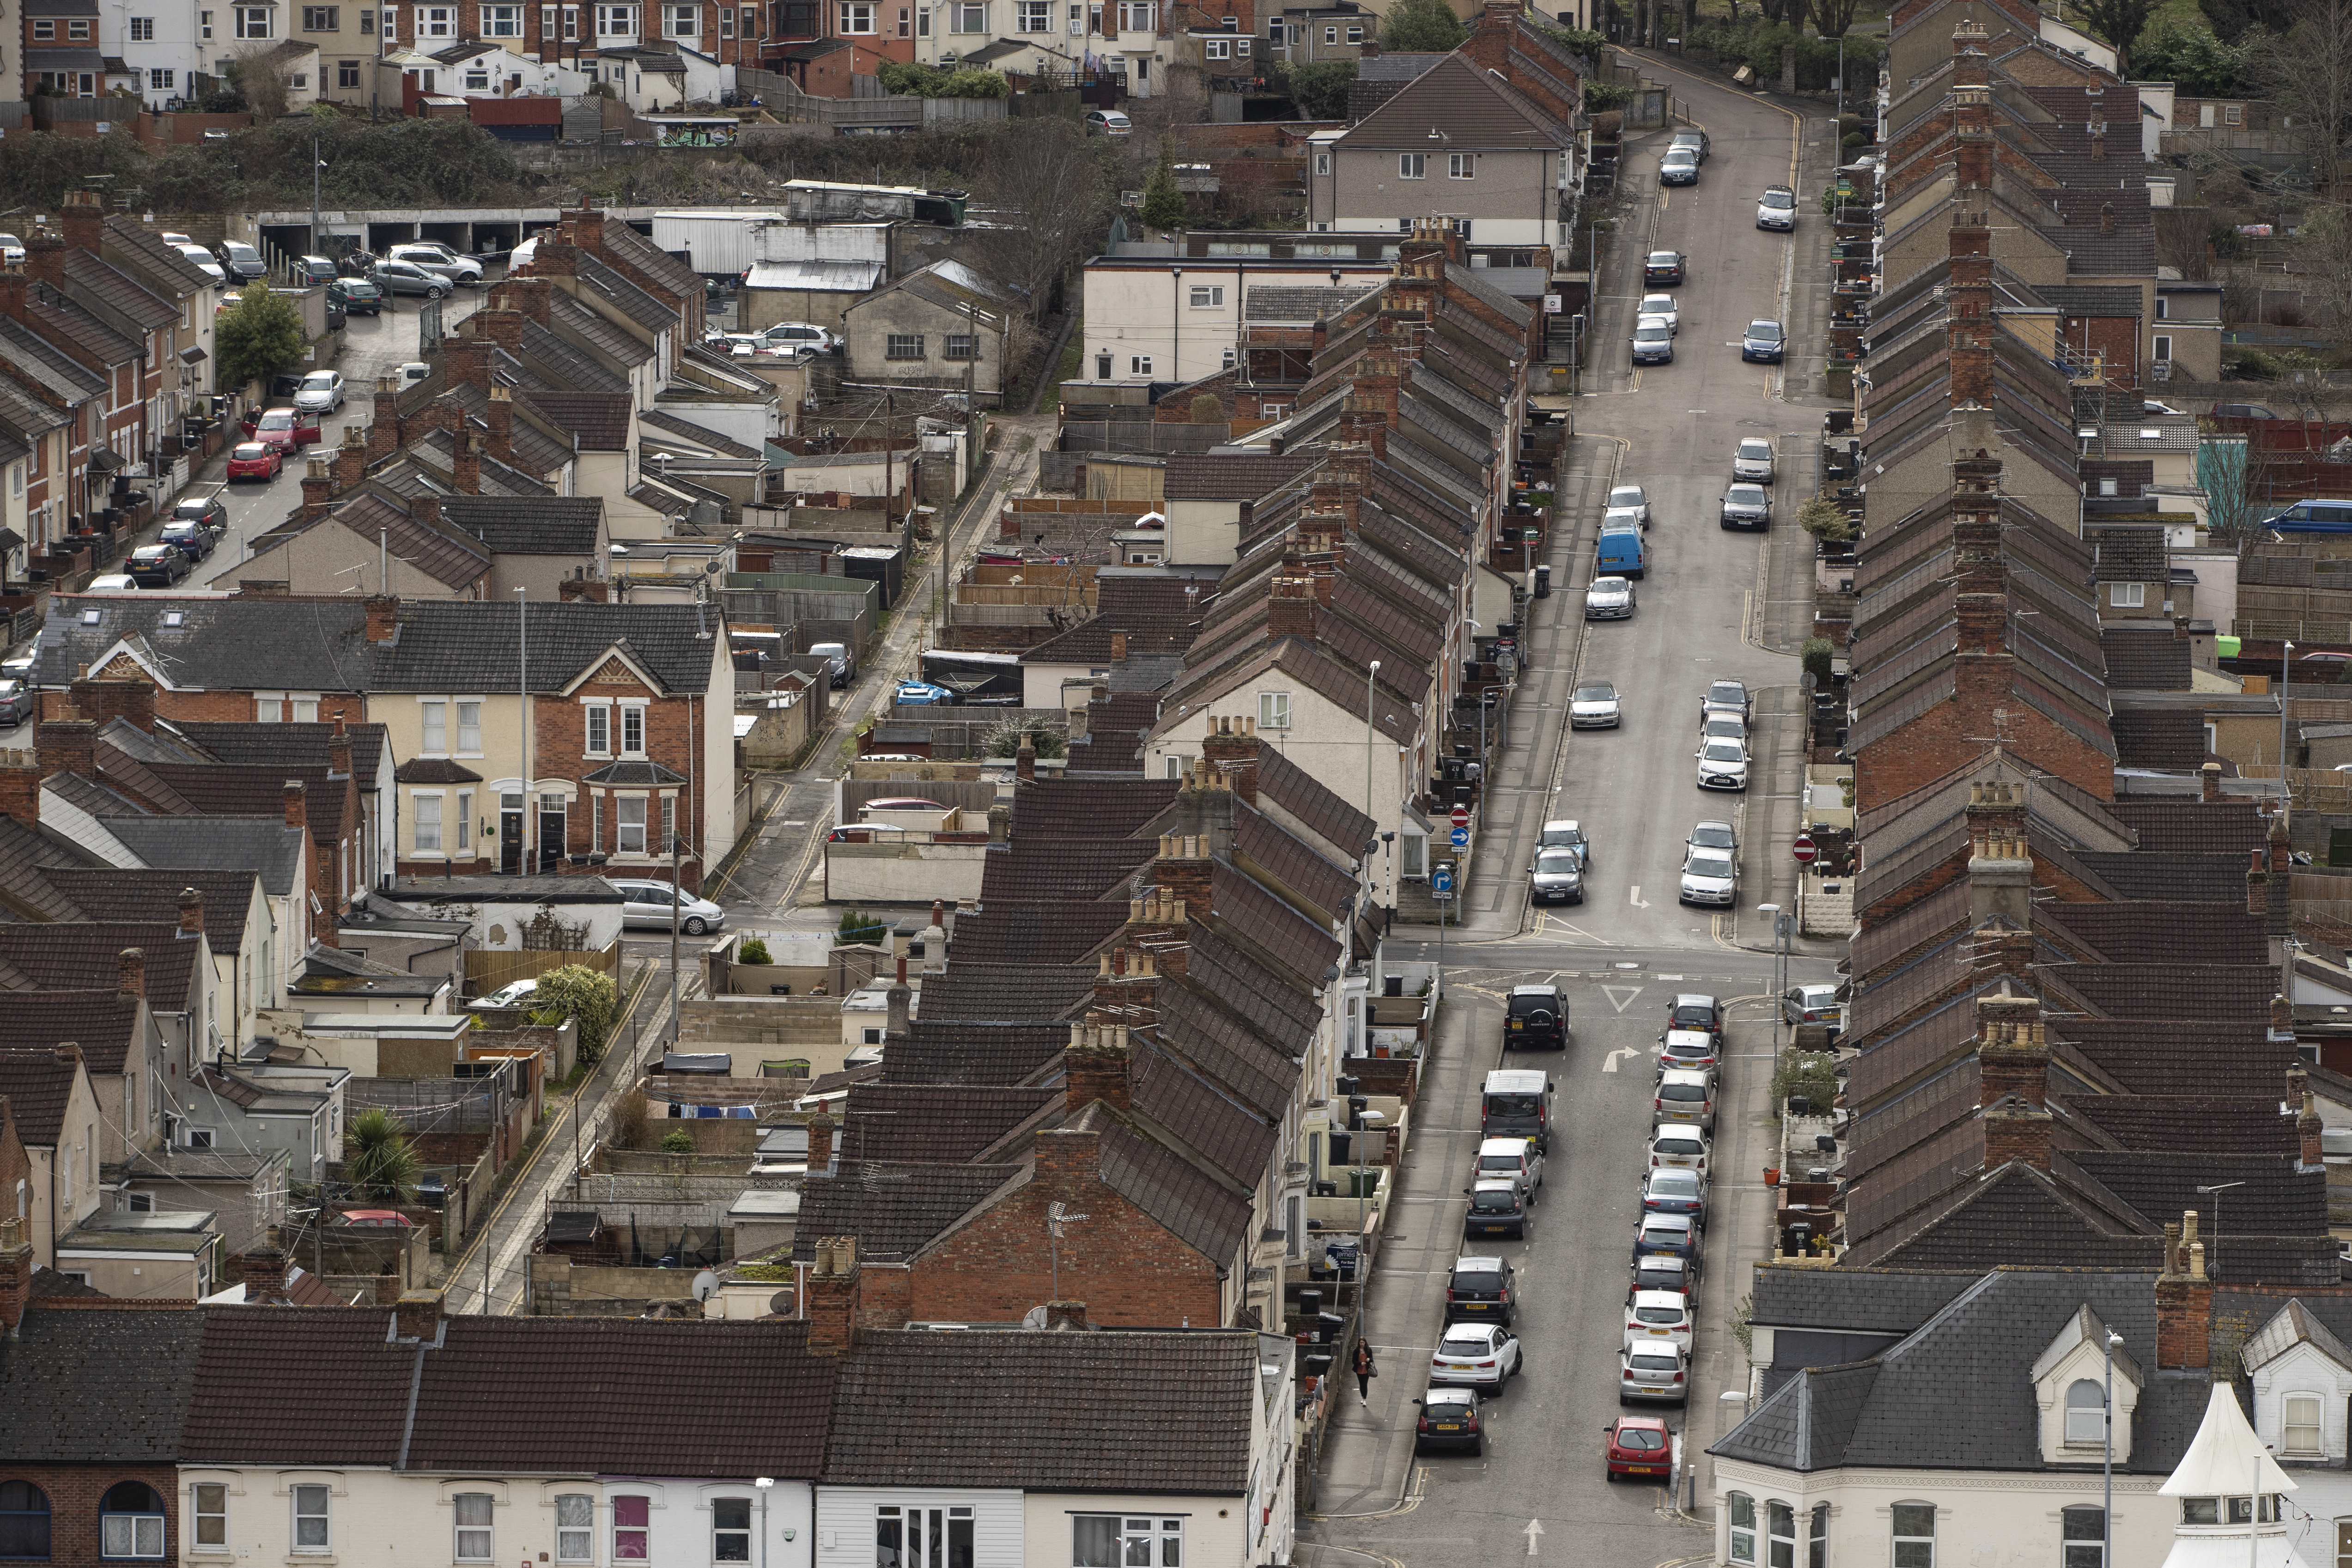 SWINDON, ENGLAND - FEBRUARY 20: A general view over housing on the edge of the town centre on February 20, 2019 in Swindon, England. The factory is Honda's only EU plant and has produced the Honda's 'Civic' model for over 24 years, with 150,000 of the cars rolling off the line annually. The manufacturer is a major employer in the town of around 220,000 and sits on the M4 corridor between London to the East and Bristol to the West. In 1986 one of the towns last major employers GWR (Great Western Railway) closed it's doors after a 140 year history of Railway locomotive manufacture putting around 1,500 people out of work.  (Photo by Dan Kitwood/Getty Images)